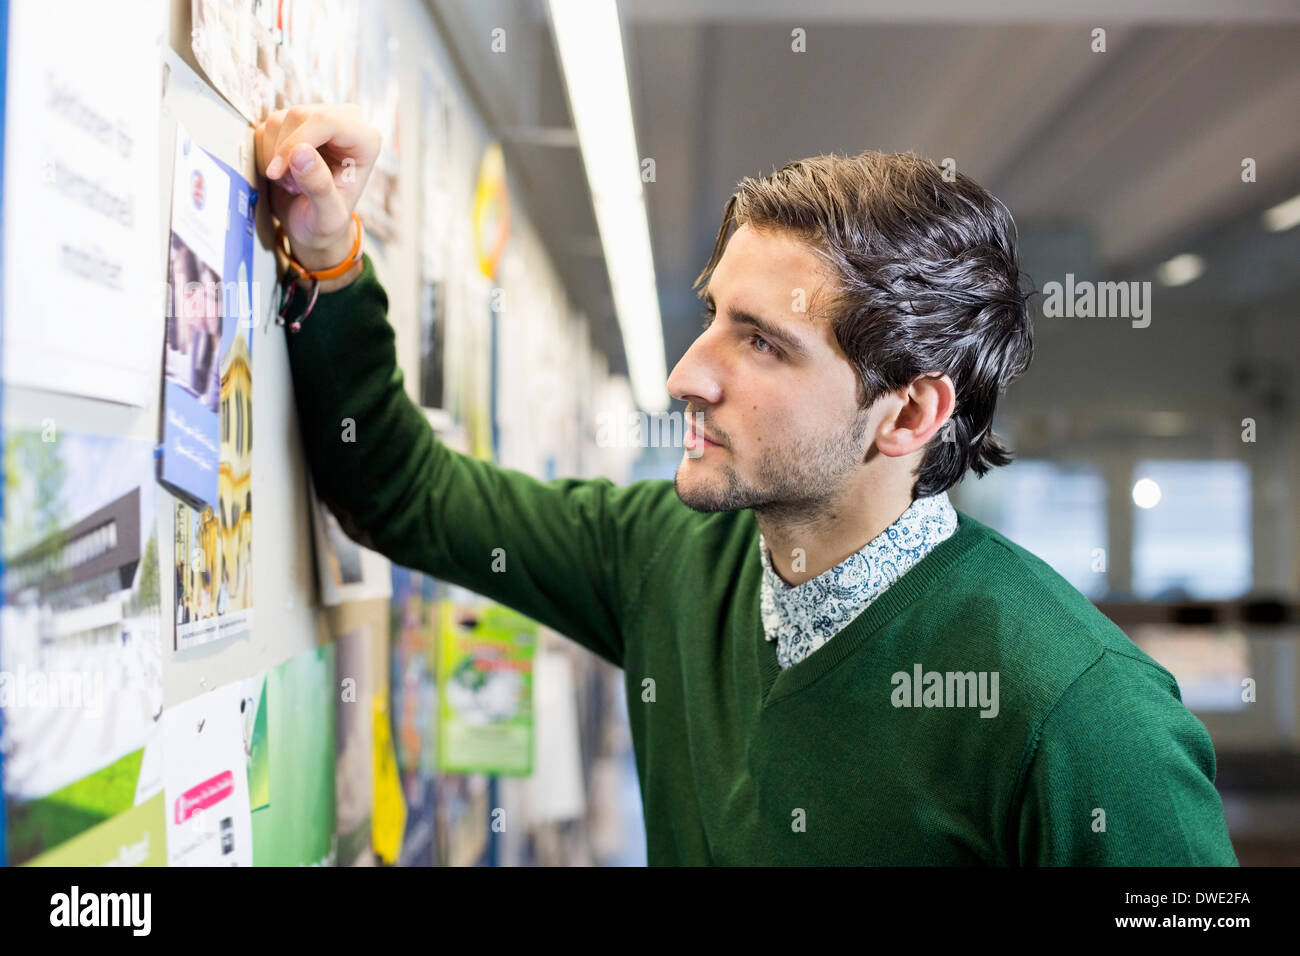 Male student reading notice board in college - Stock Image